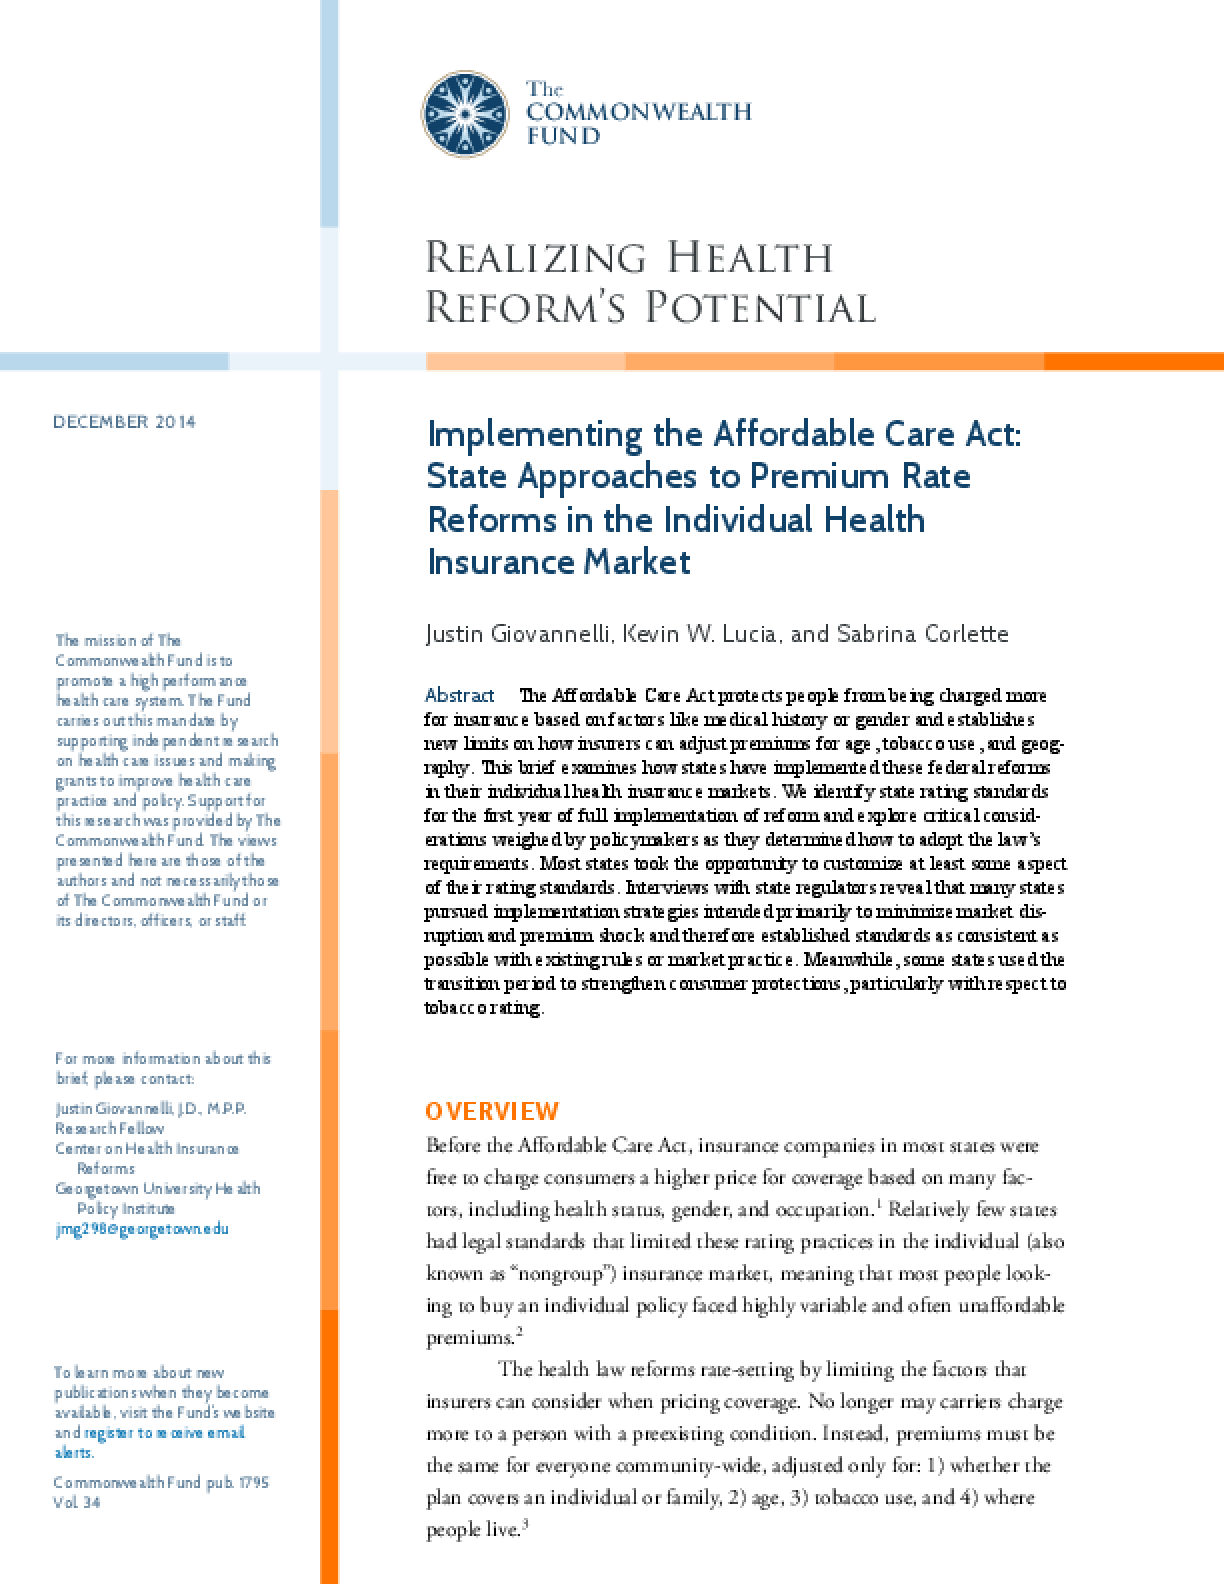 State Approaches to Premium Rate Reforms in the Individual Health Insurance Market